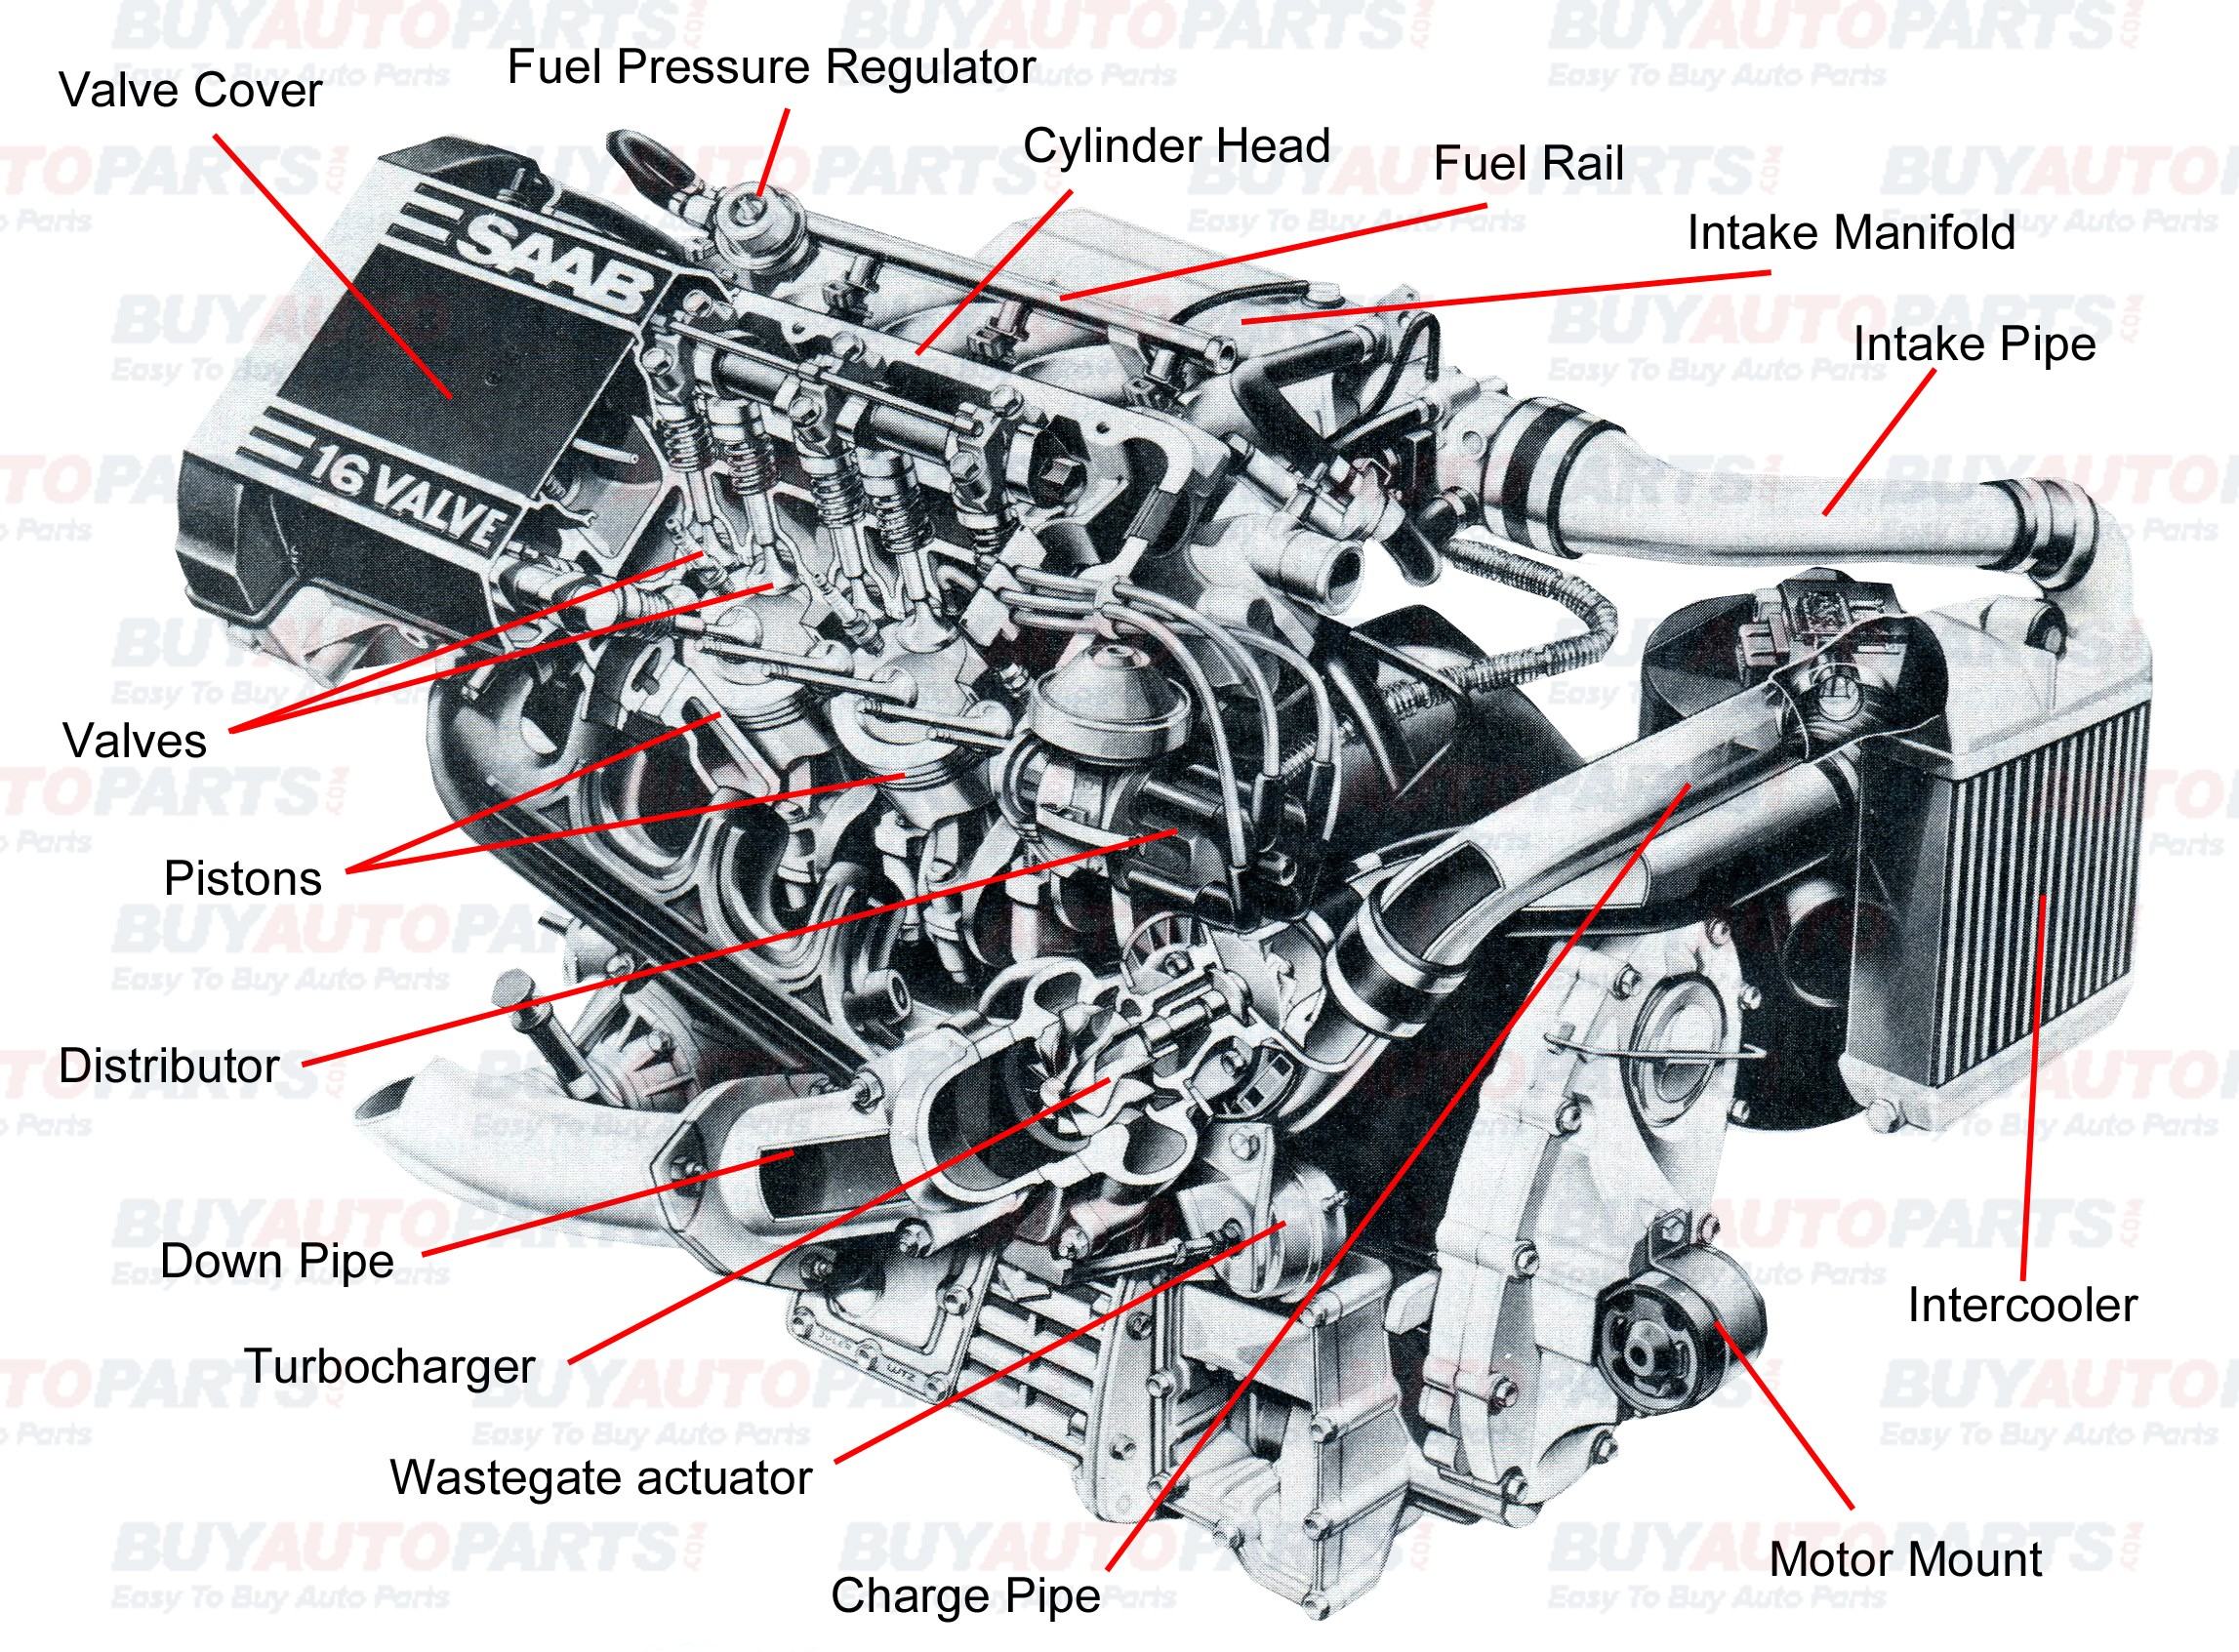 Diagrams Of Car Engines Car Engine Diagram Simple Overview the Engine Wiring Diagram Week Of Diagrams Of Car Engines Wire Harness Bmw X5 35d